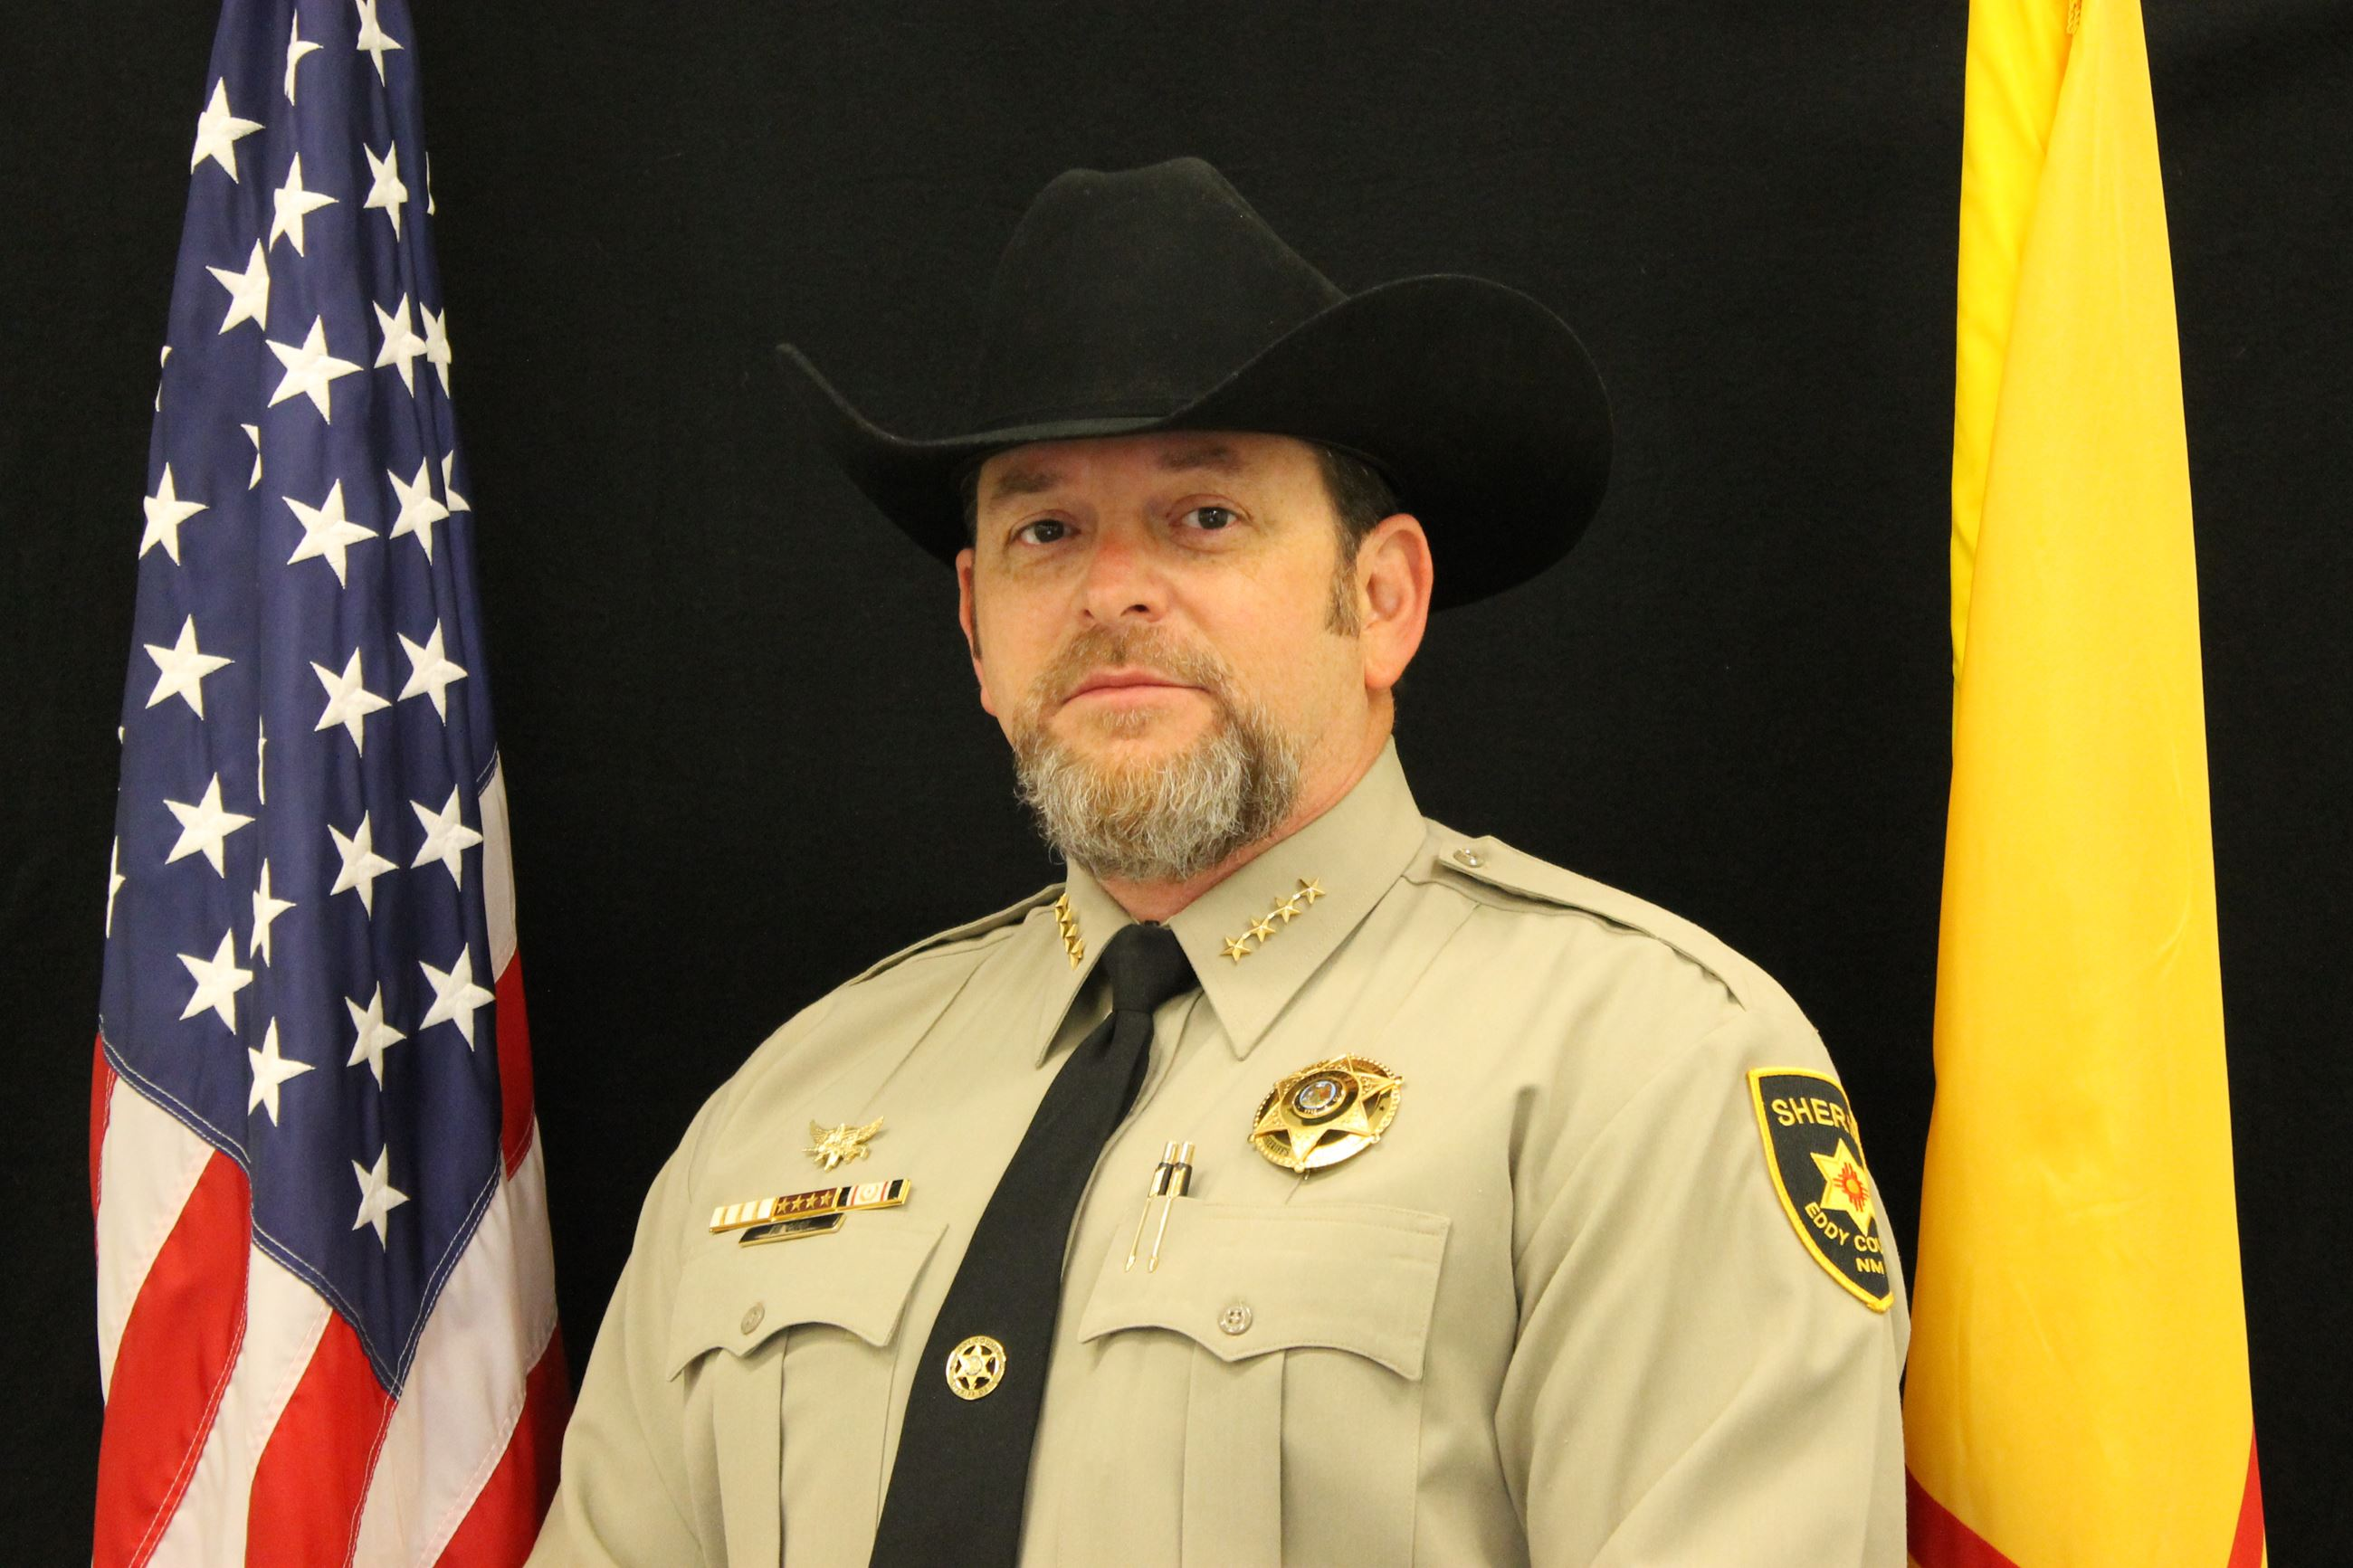 Mark Cage, Sheriff